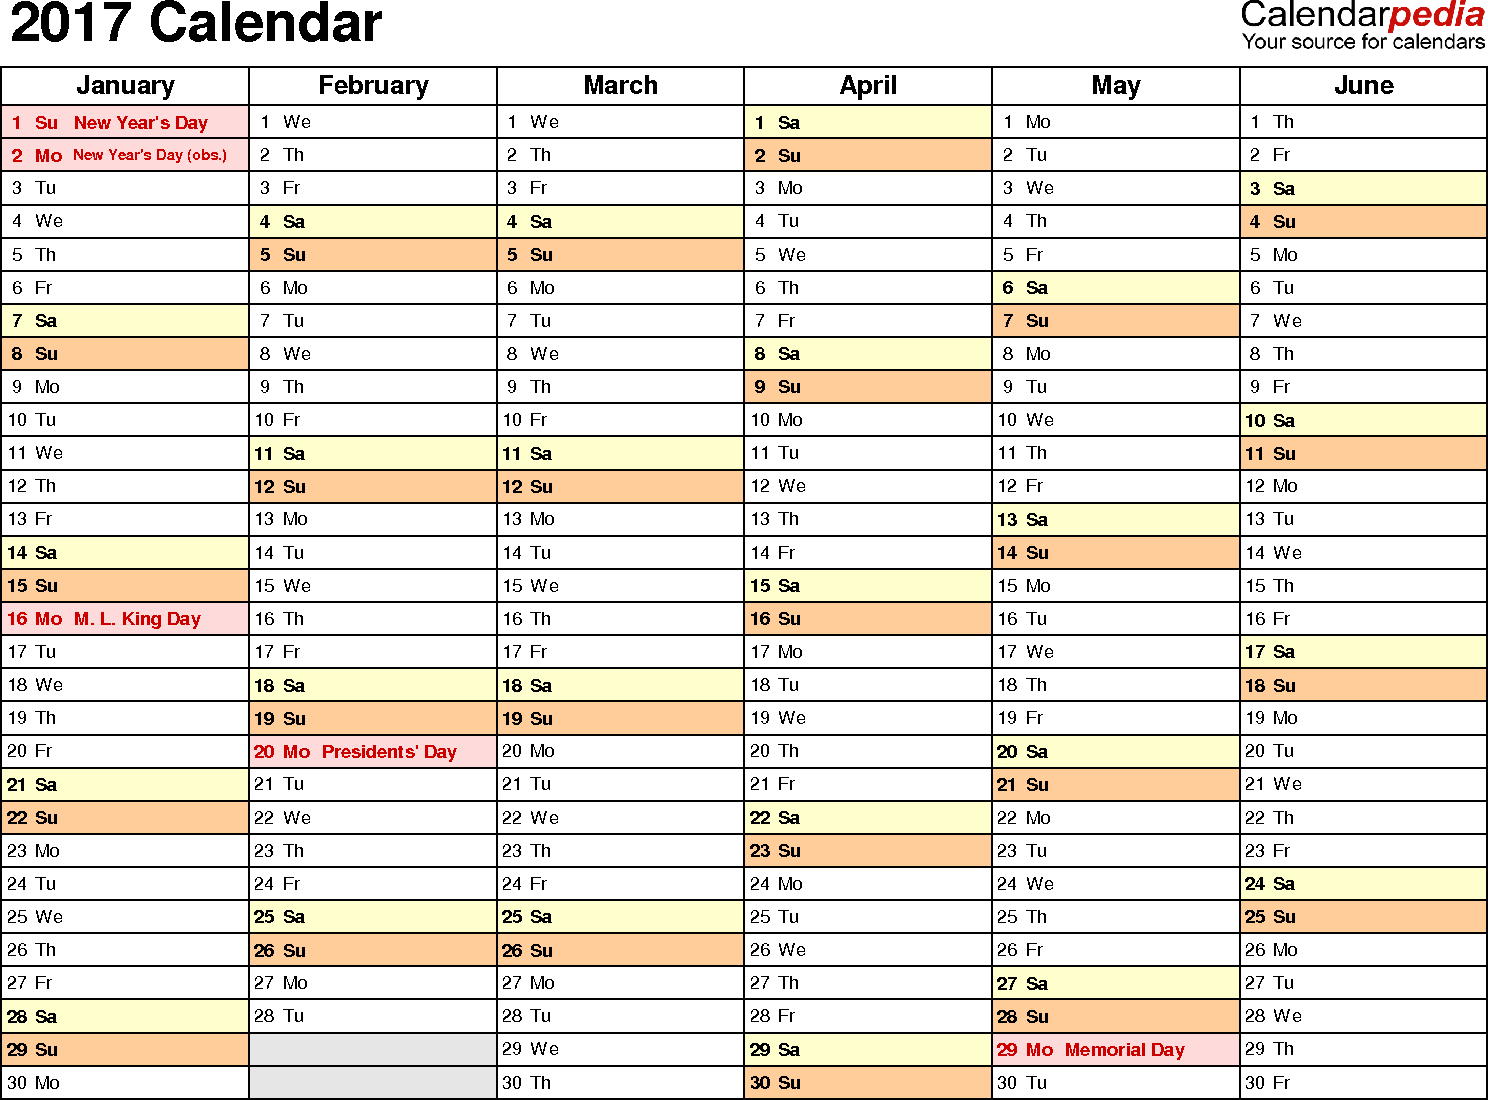 Ediblewildsus  Scenic  Calendar  Download  Free Printable Excel Templates Xls With Excellent Template   Calendar For Excel Months Horizontally  Pages Landscape Orientation With Nice Power Excel  Free Download Also Copy Formatting Excel In Addition Managing Inventory In Excel And Solve For X Excel As Well As All About Macros In Excel Additionally Microsoft Word Table To Excel From Calendarpediacom With Ediblewildsus  Excellent  Calendar  Download  Free Printable Excel Templates Xls With Nice Template   Calendar For Excel Months Horizontally  Pages Landscape Orientation And Scenic Power Excel  Free Download Also Copy Formatting Excel In Addition Managing Inventory In Excel From Calendarpediacom